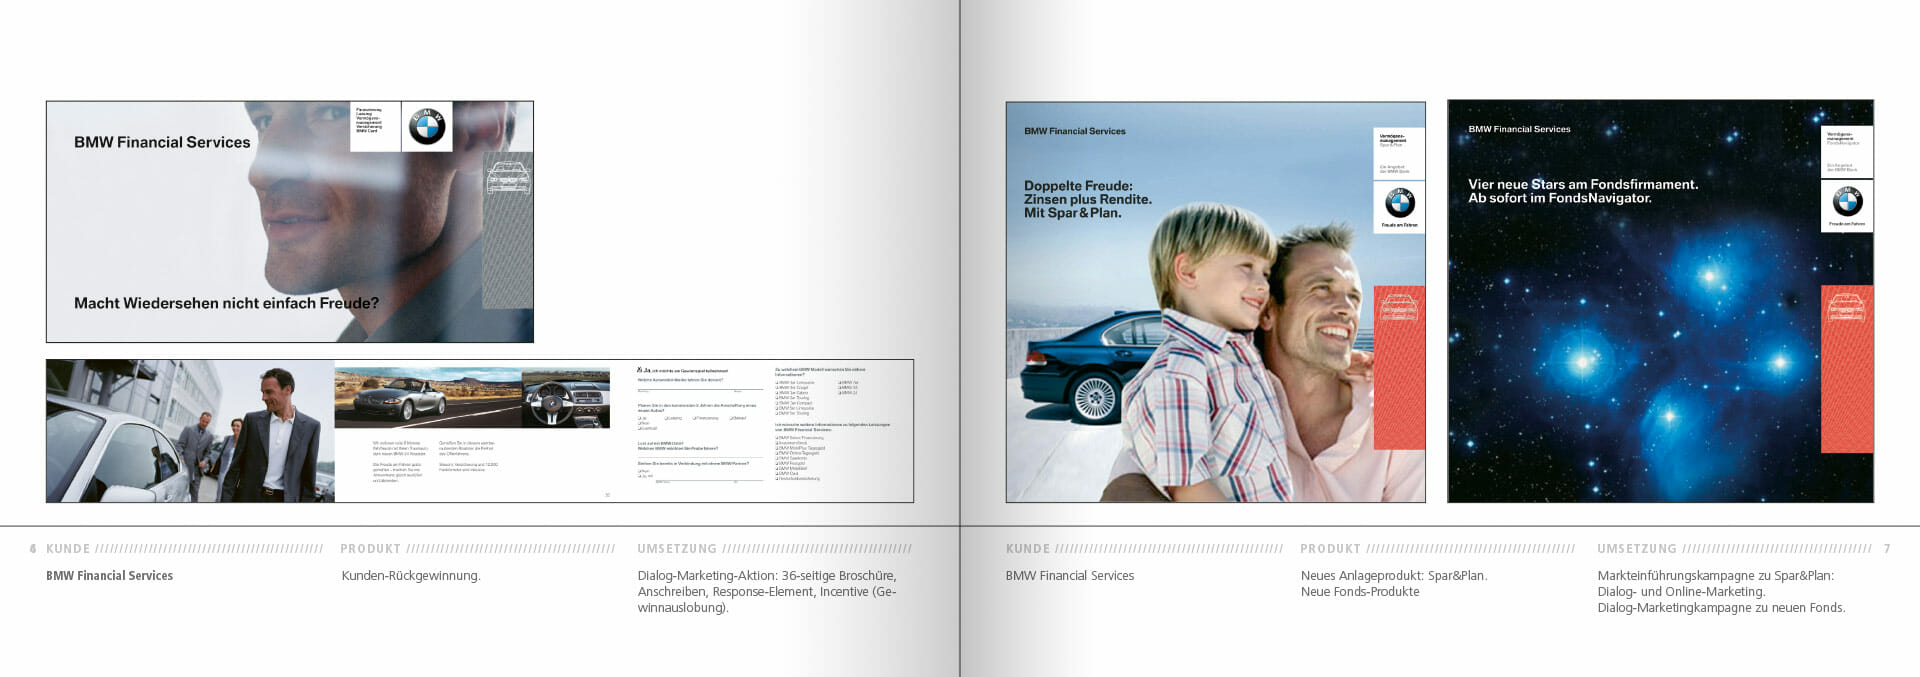 BMW Group Works 2001-2009 Booklet 6-7